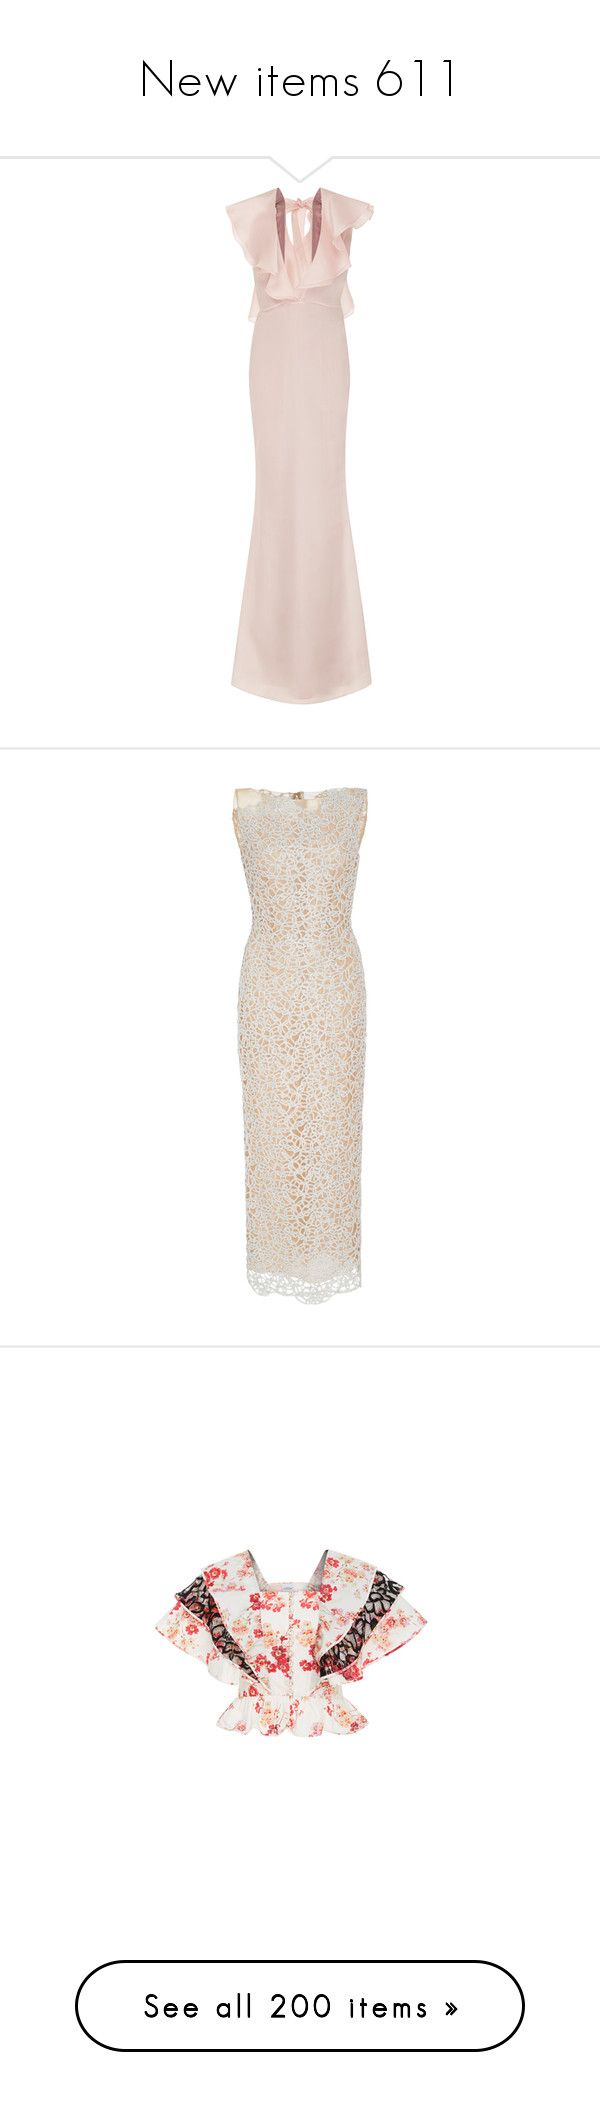 """New items 611"" by cavallaro ❤ liked on Polyvore featuring dresses, pink, v neckline dress, plunging v neck dress, pink maxi dress, pink ruffle dress, v neck maxi dress, neutral, metallic dress and long special occasion dresses"